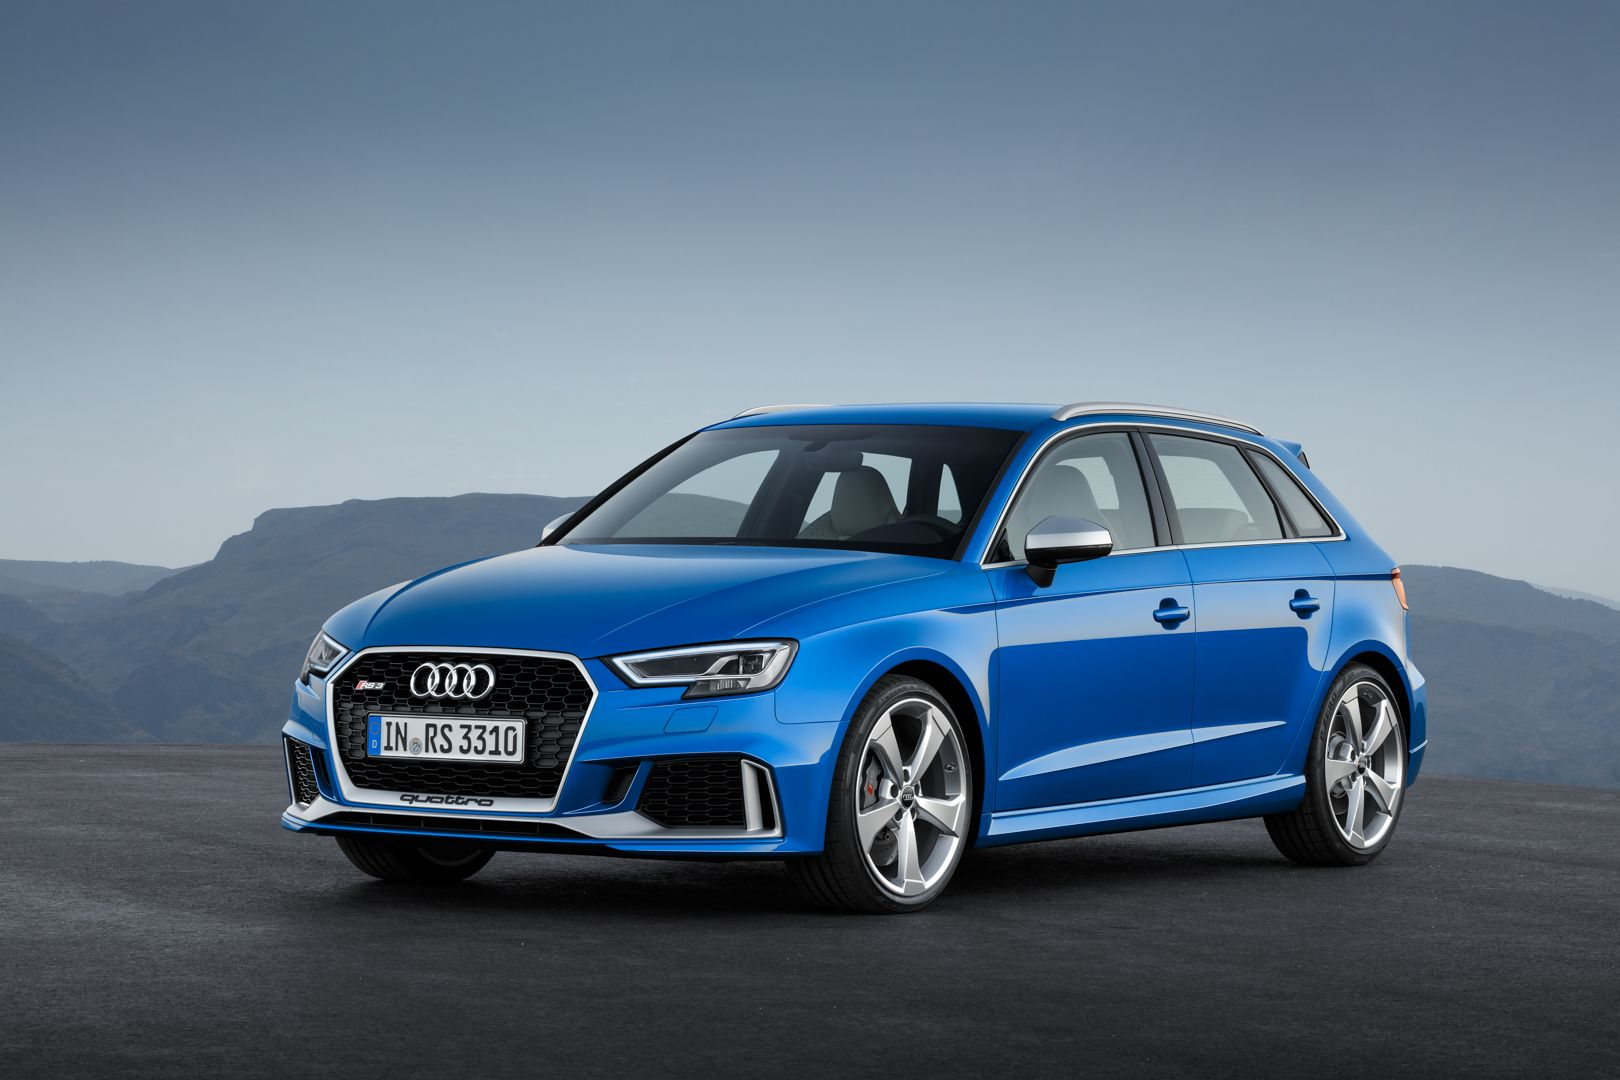 Video Audi Rs3 Sportback Takes On Some Rivals In Carwow Drag Race In 2020 Audi Rs3 Best Small Cars Audi Rs